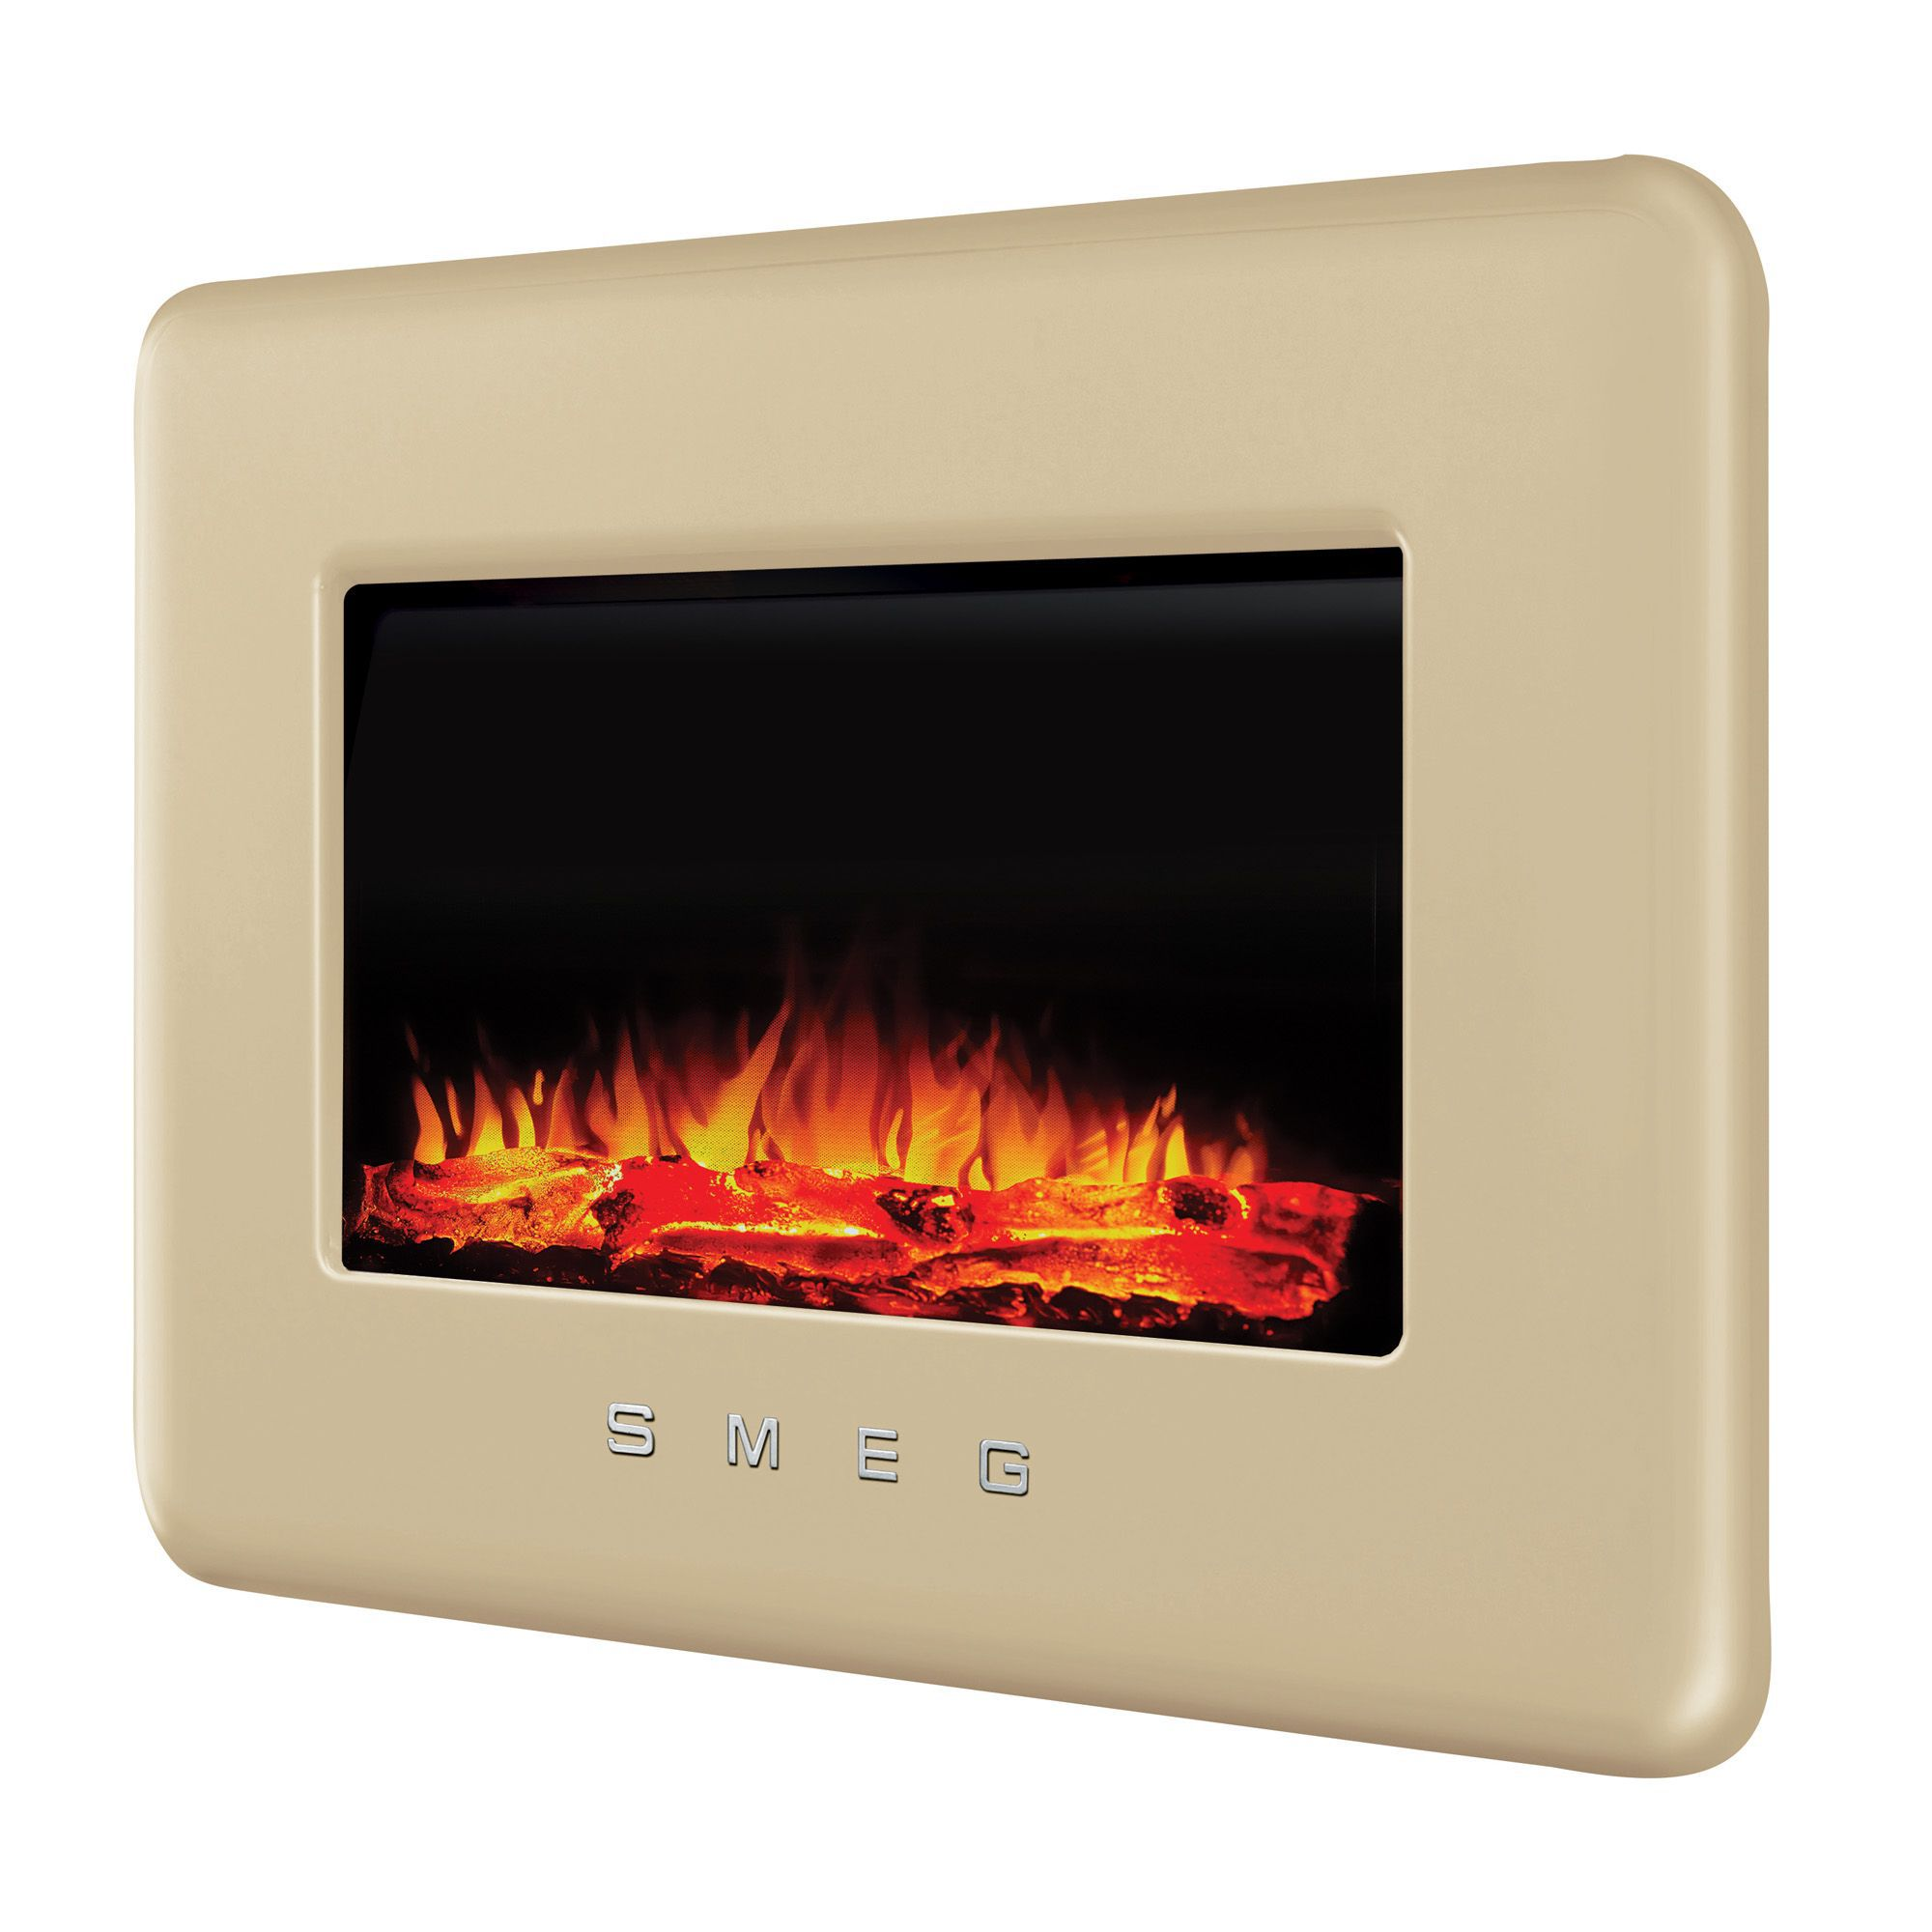 Smeg Retro Cream Remote Control Electric Fire